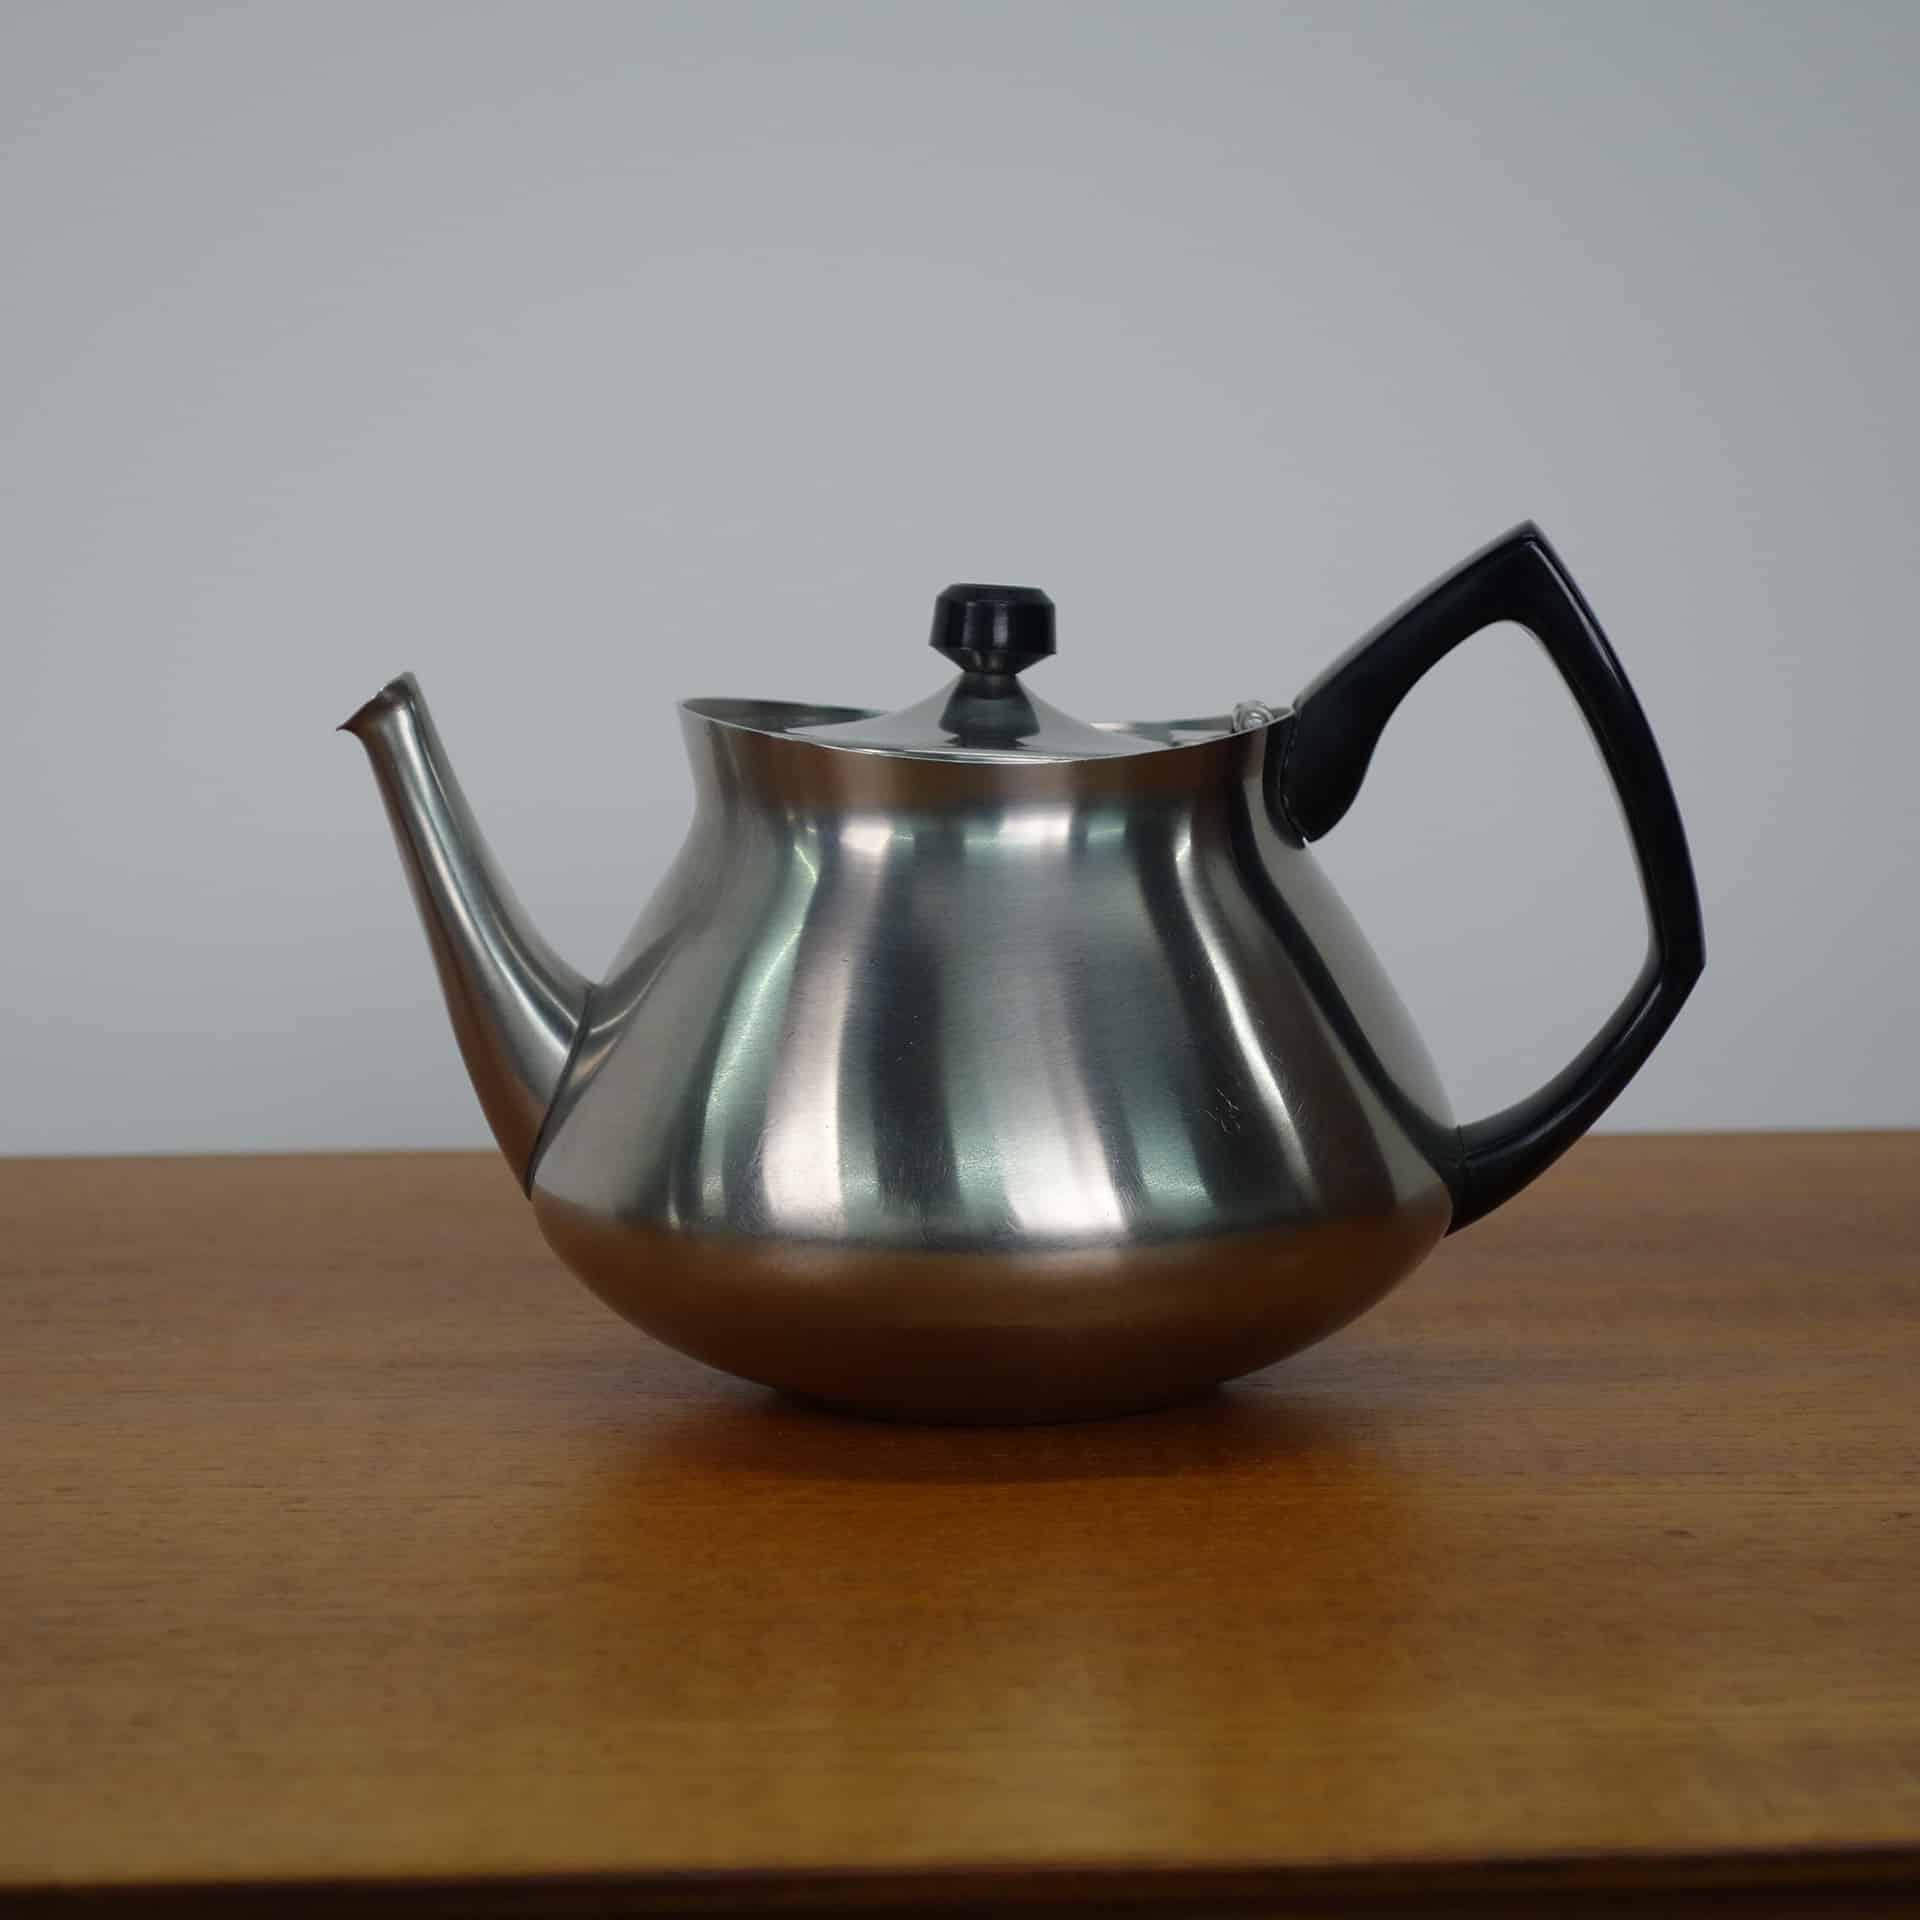 Eric Clements stainless steel tea pot for Bramah